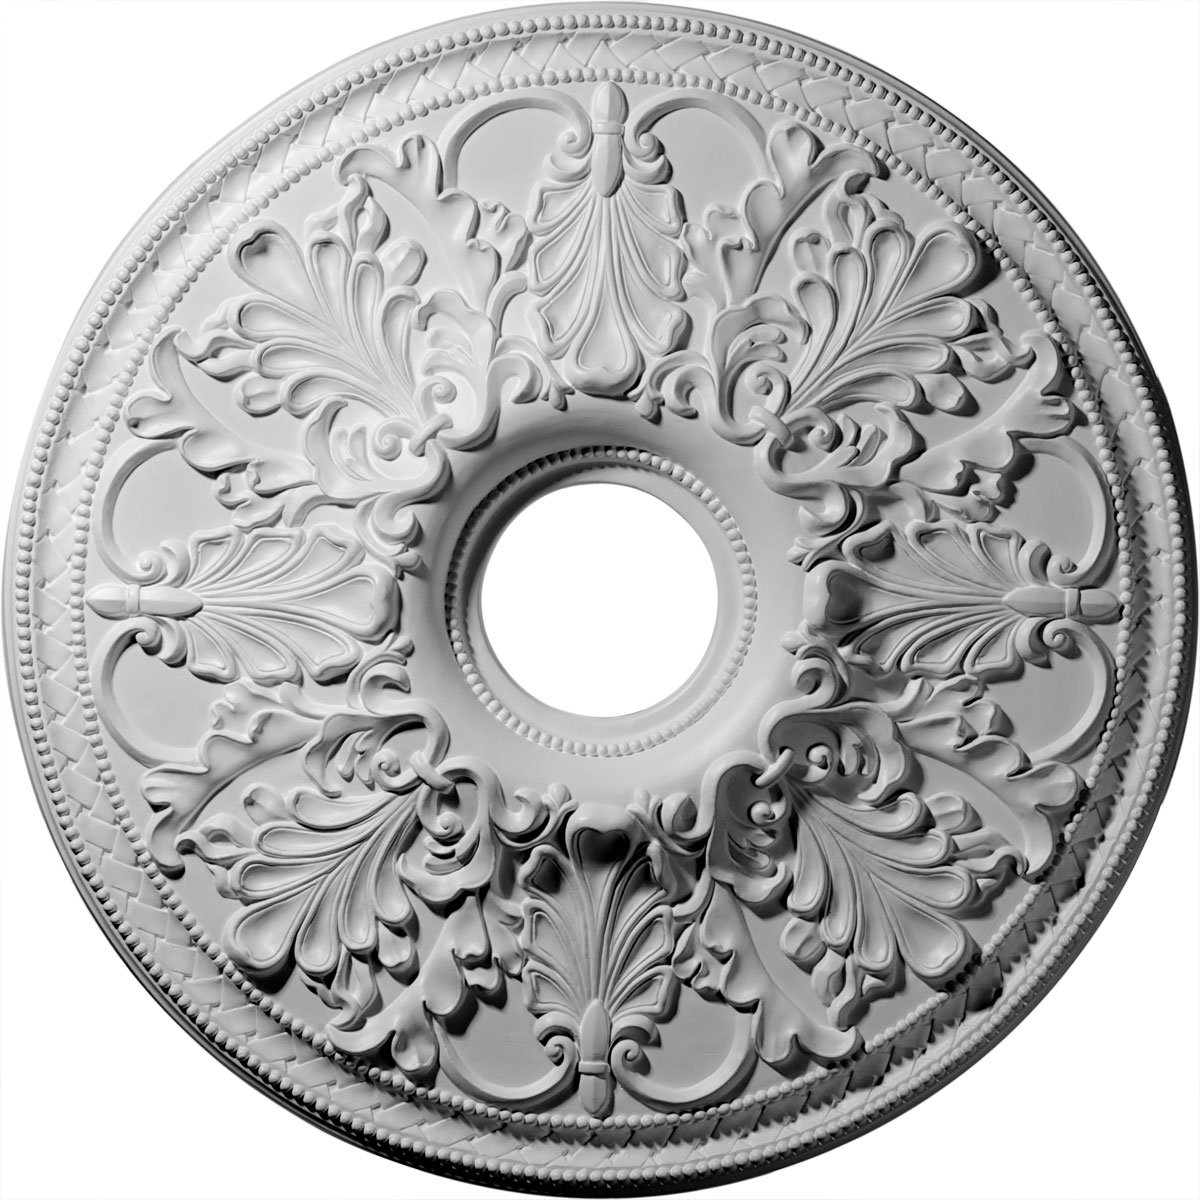 Ekena Millwork CM23AS 23 7/8-Inch OD x 4 1/8-Inch ID Ashley Ceiling Medallion